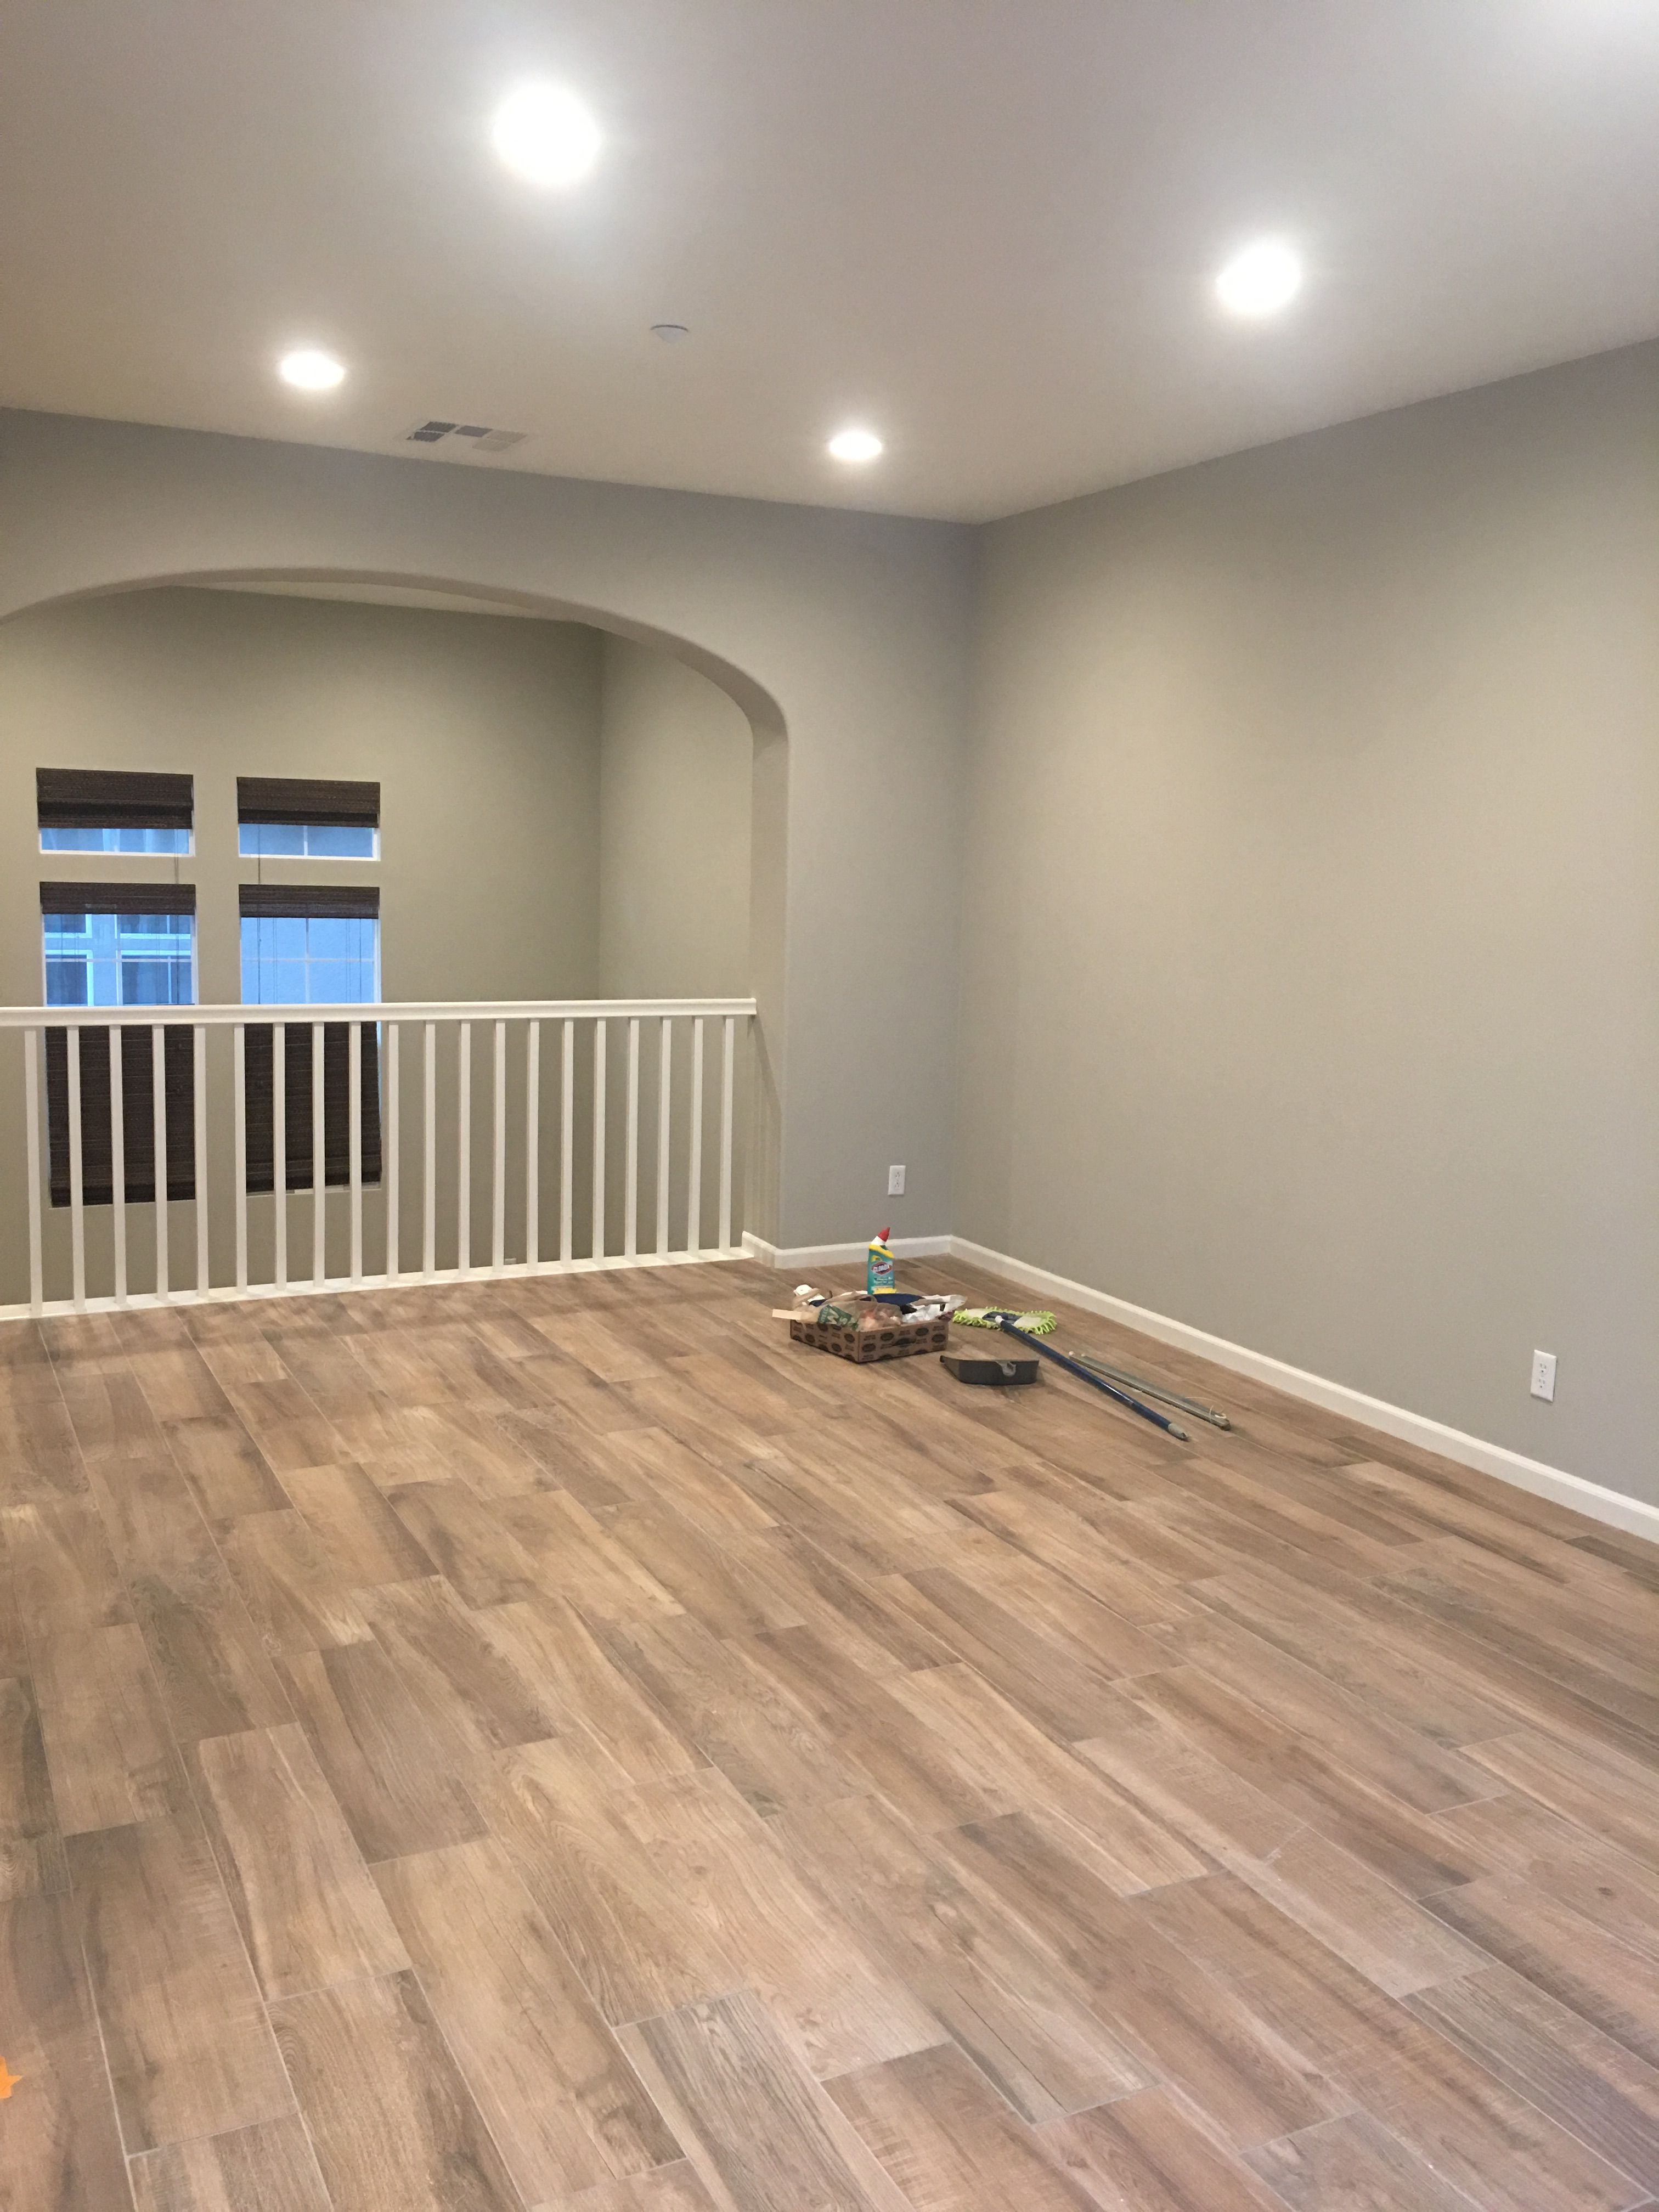 Benjamin Moore wall color Revere Pewter and wood look Tile